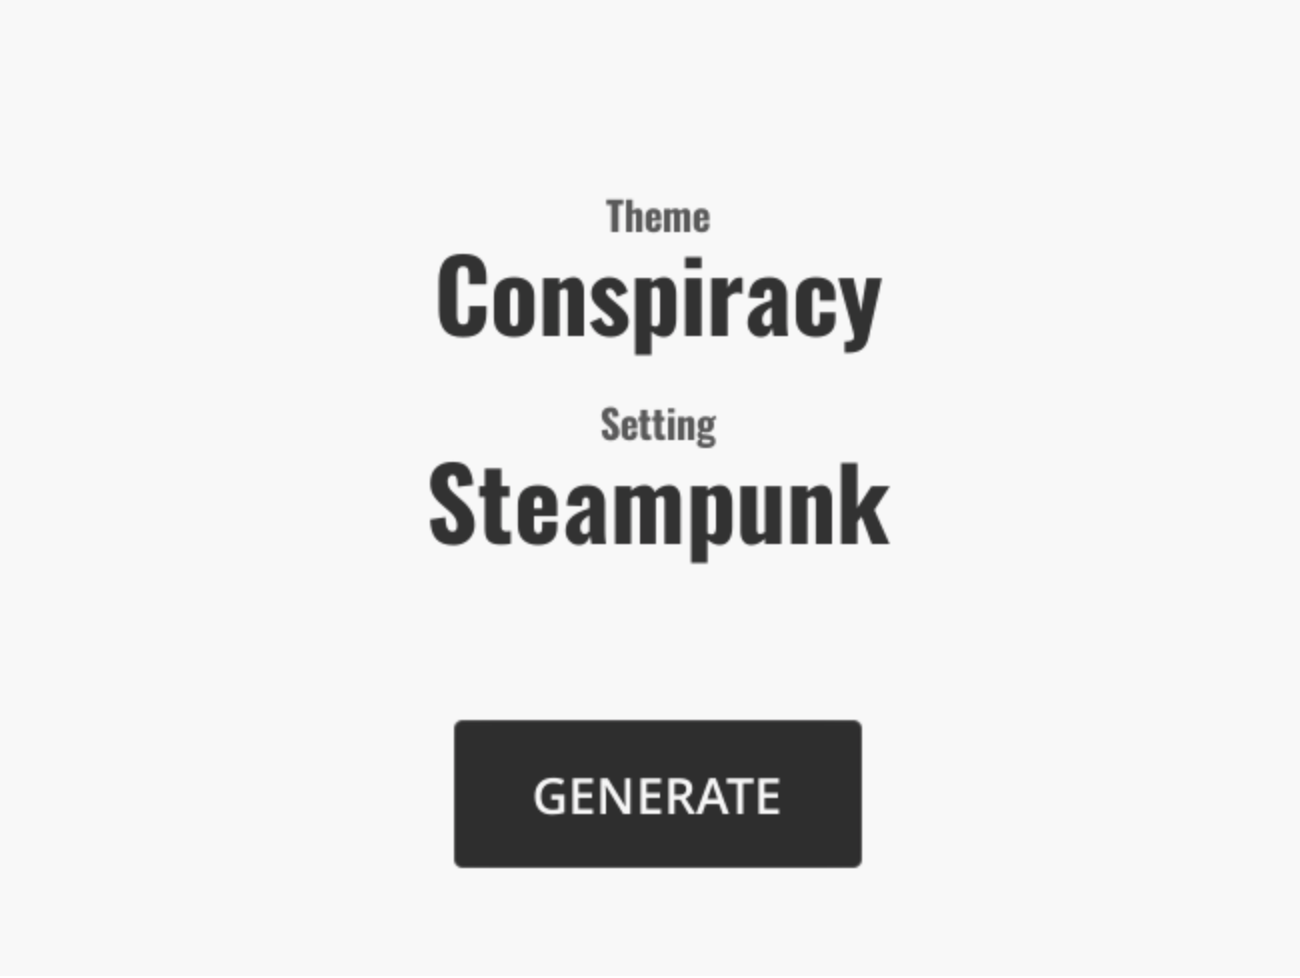 Generated Story and Theme Example